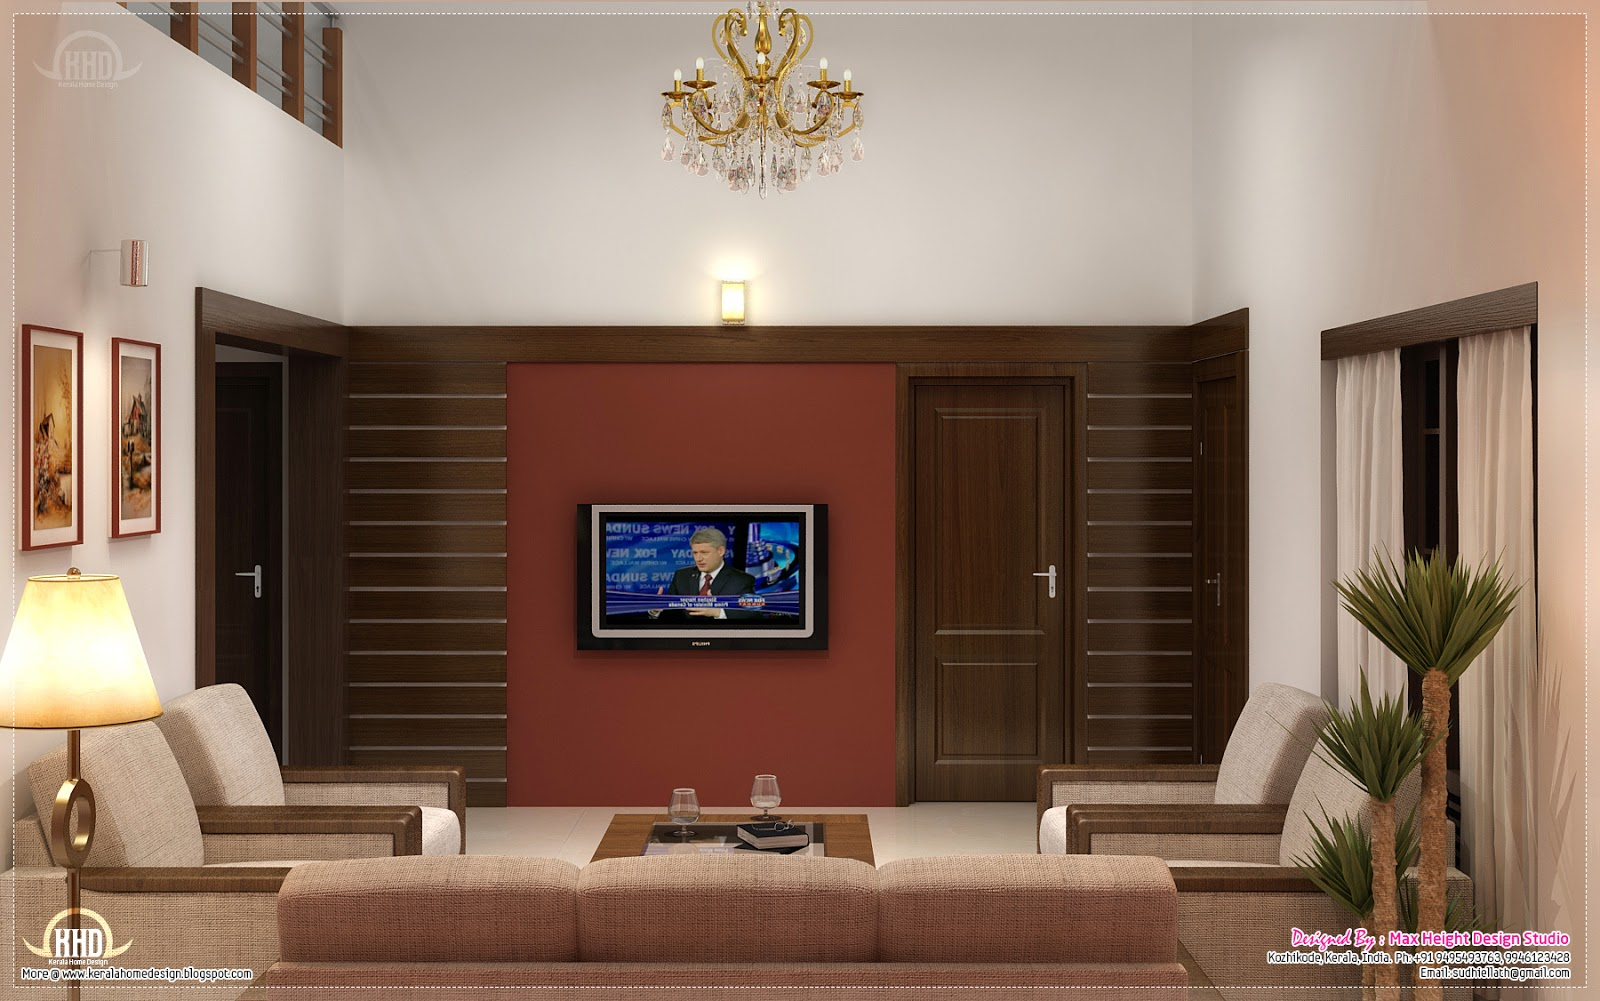 Home interior design ideas home kerala plans for Interior designs for home